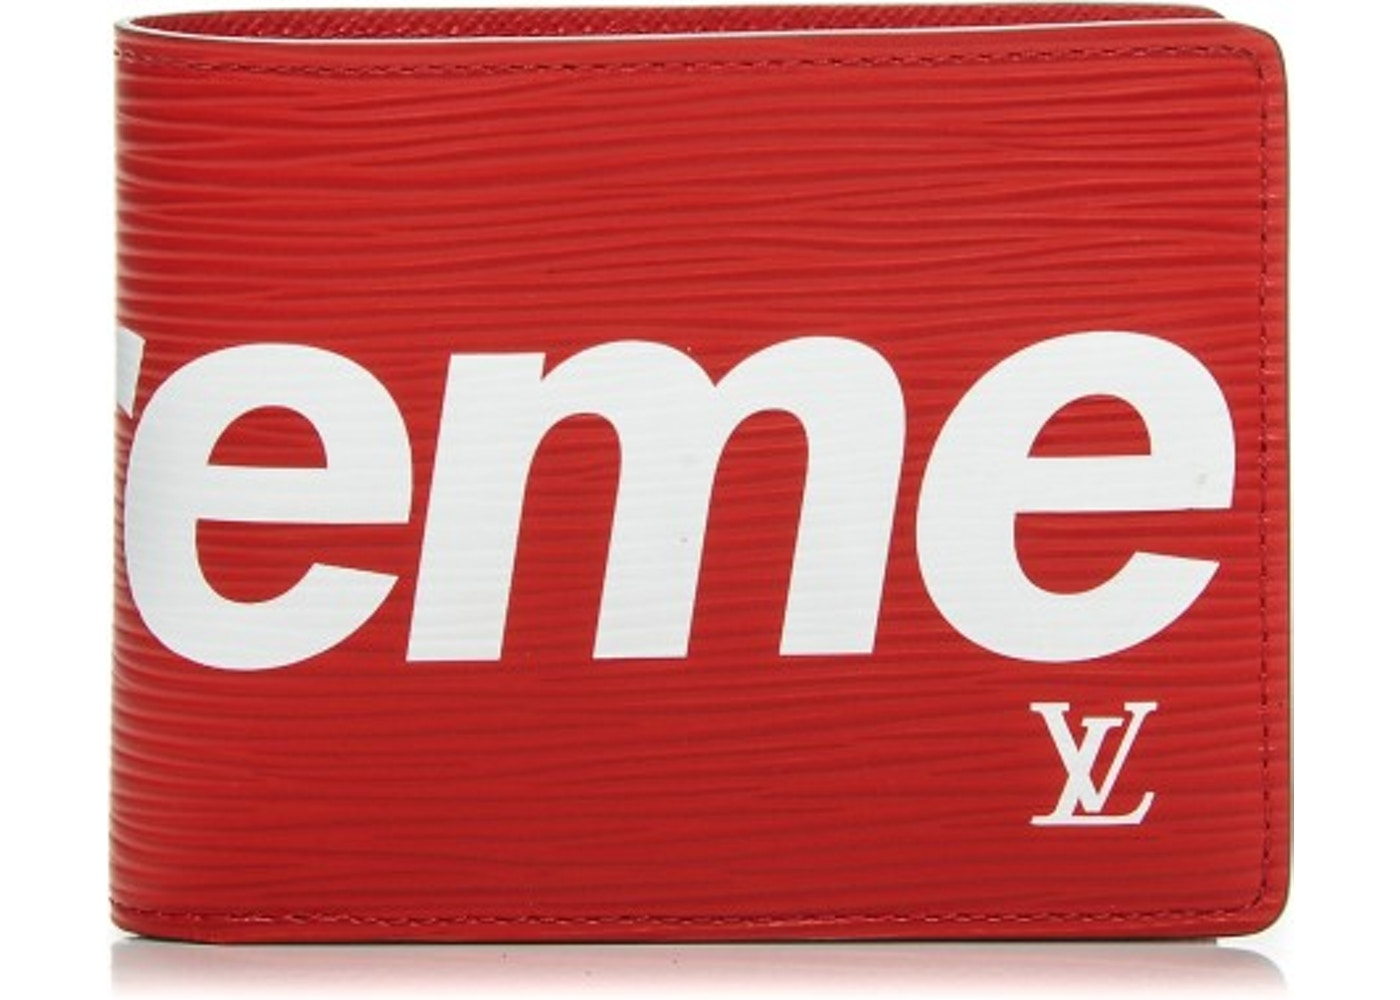 Louis Vuitton x Supreme Slender Wallet Epi Red. Epi Red